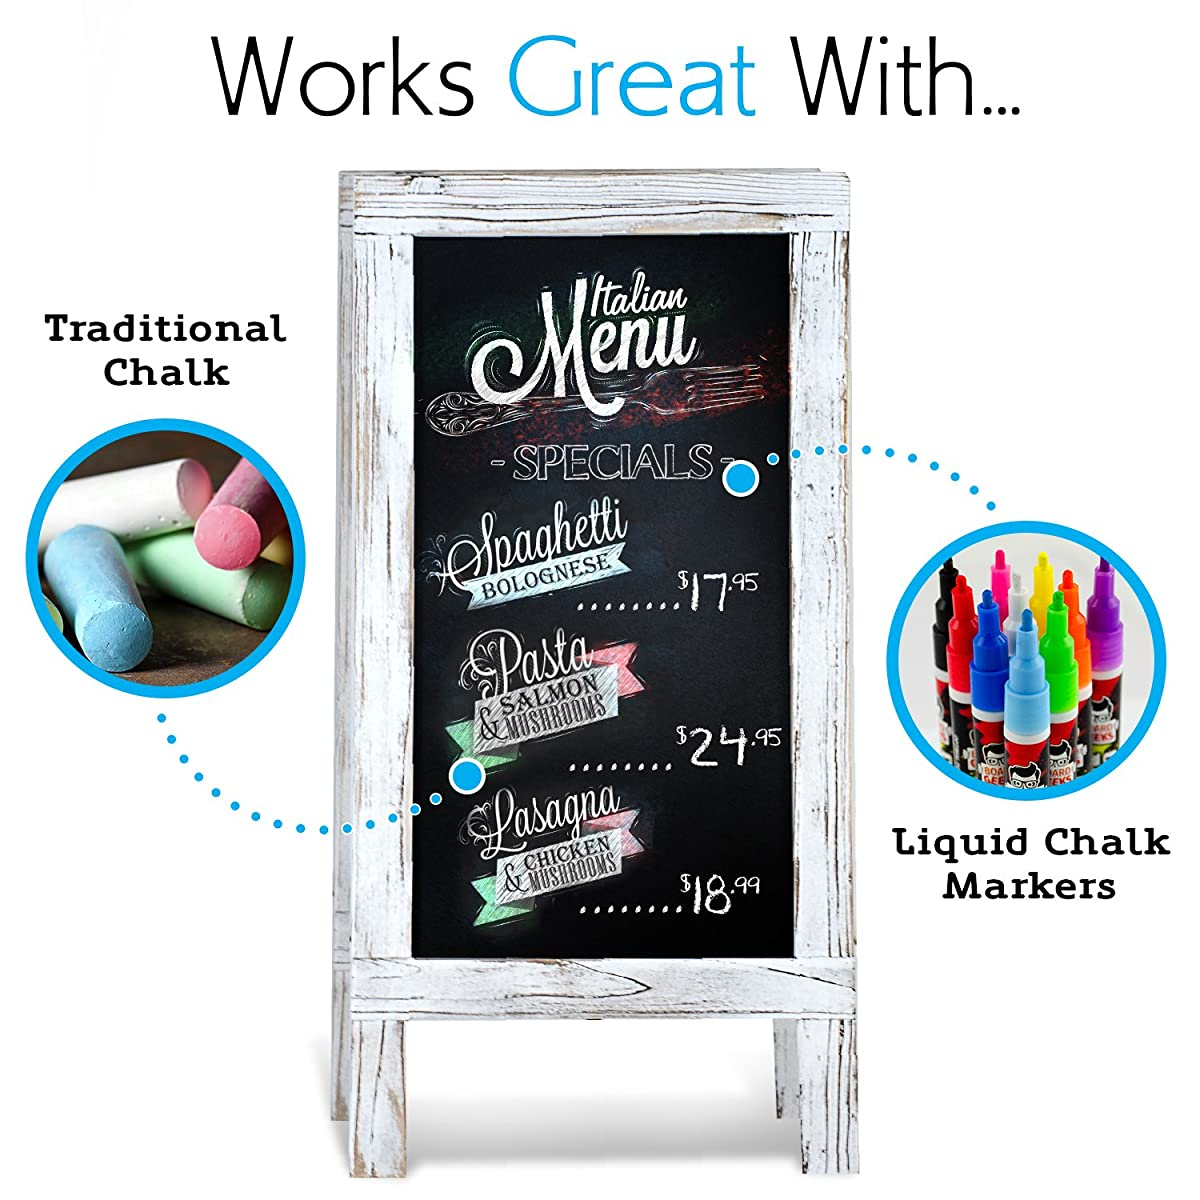 "Chalkboard A-Frame with Rustic Vintage Gray Wash Frame Sandwich Board | 20in x 40in Blackboard | Great Chalk Board Sign. Use for Sidewalk Menu, Home, Restaurant, Kitchen Decor (20"" x 40"")"